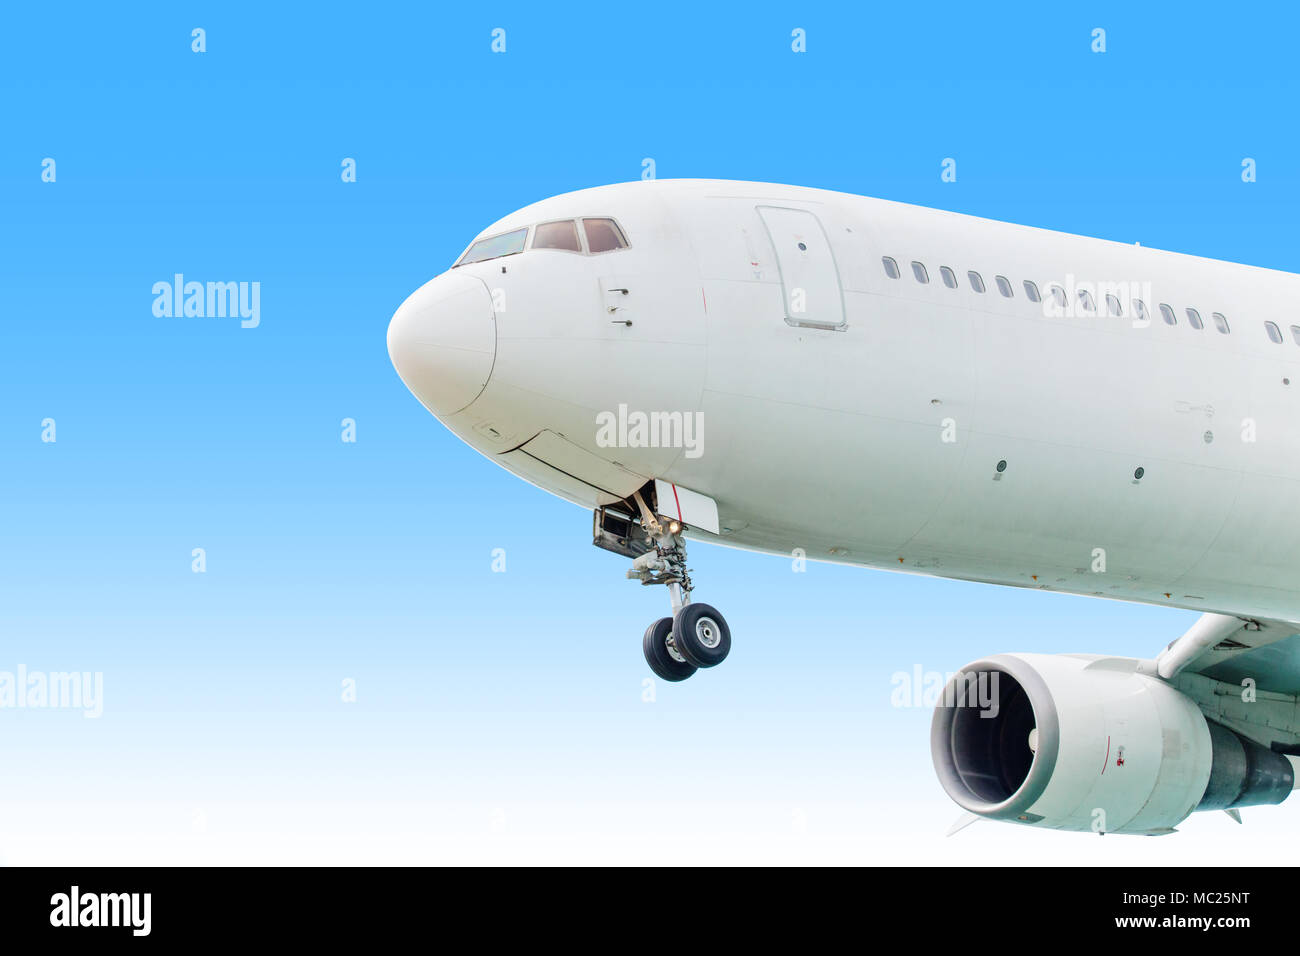 Airplane aircraft flying, landing in the good weather at blue sky - Stock Image